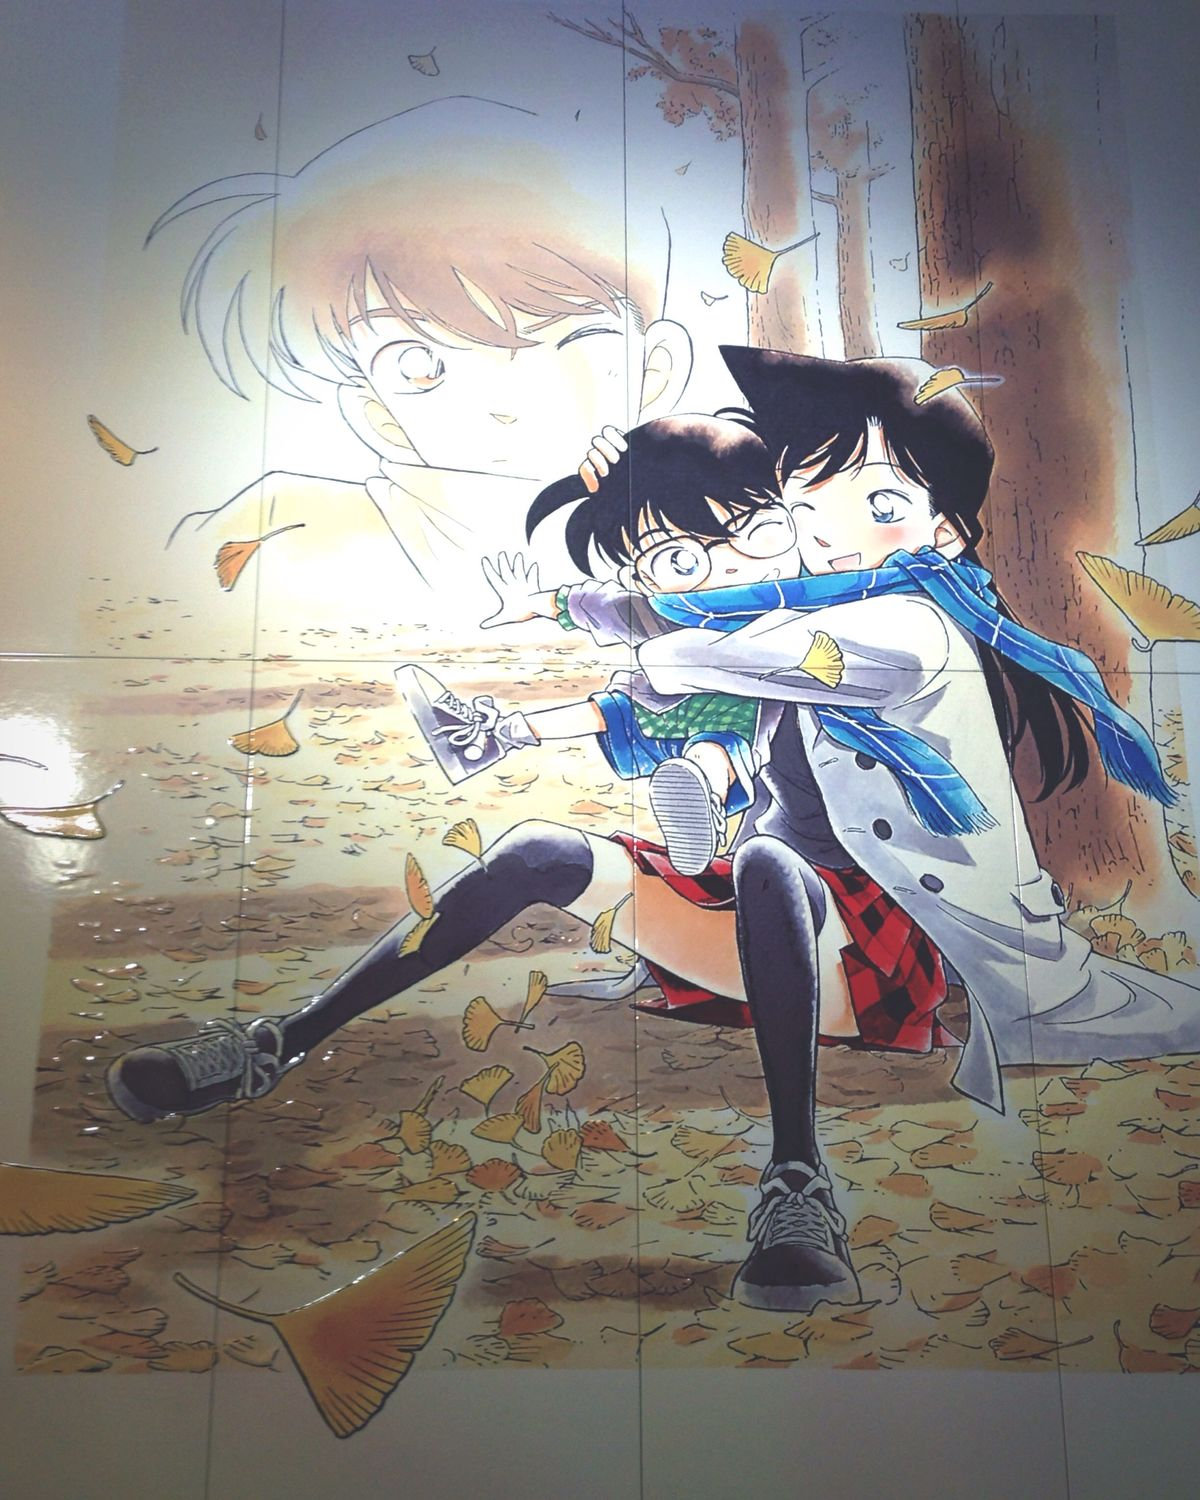 Tottori Detective Conan Ranmouri Drawing on Tiled Floor Couple IPhoneography Amazing Winter Vacation Art